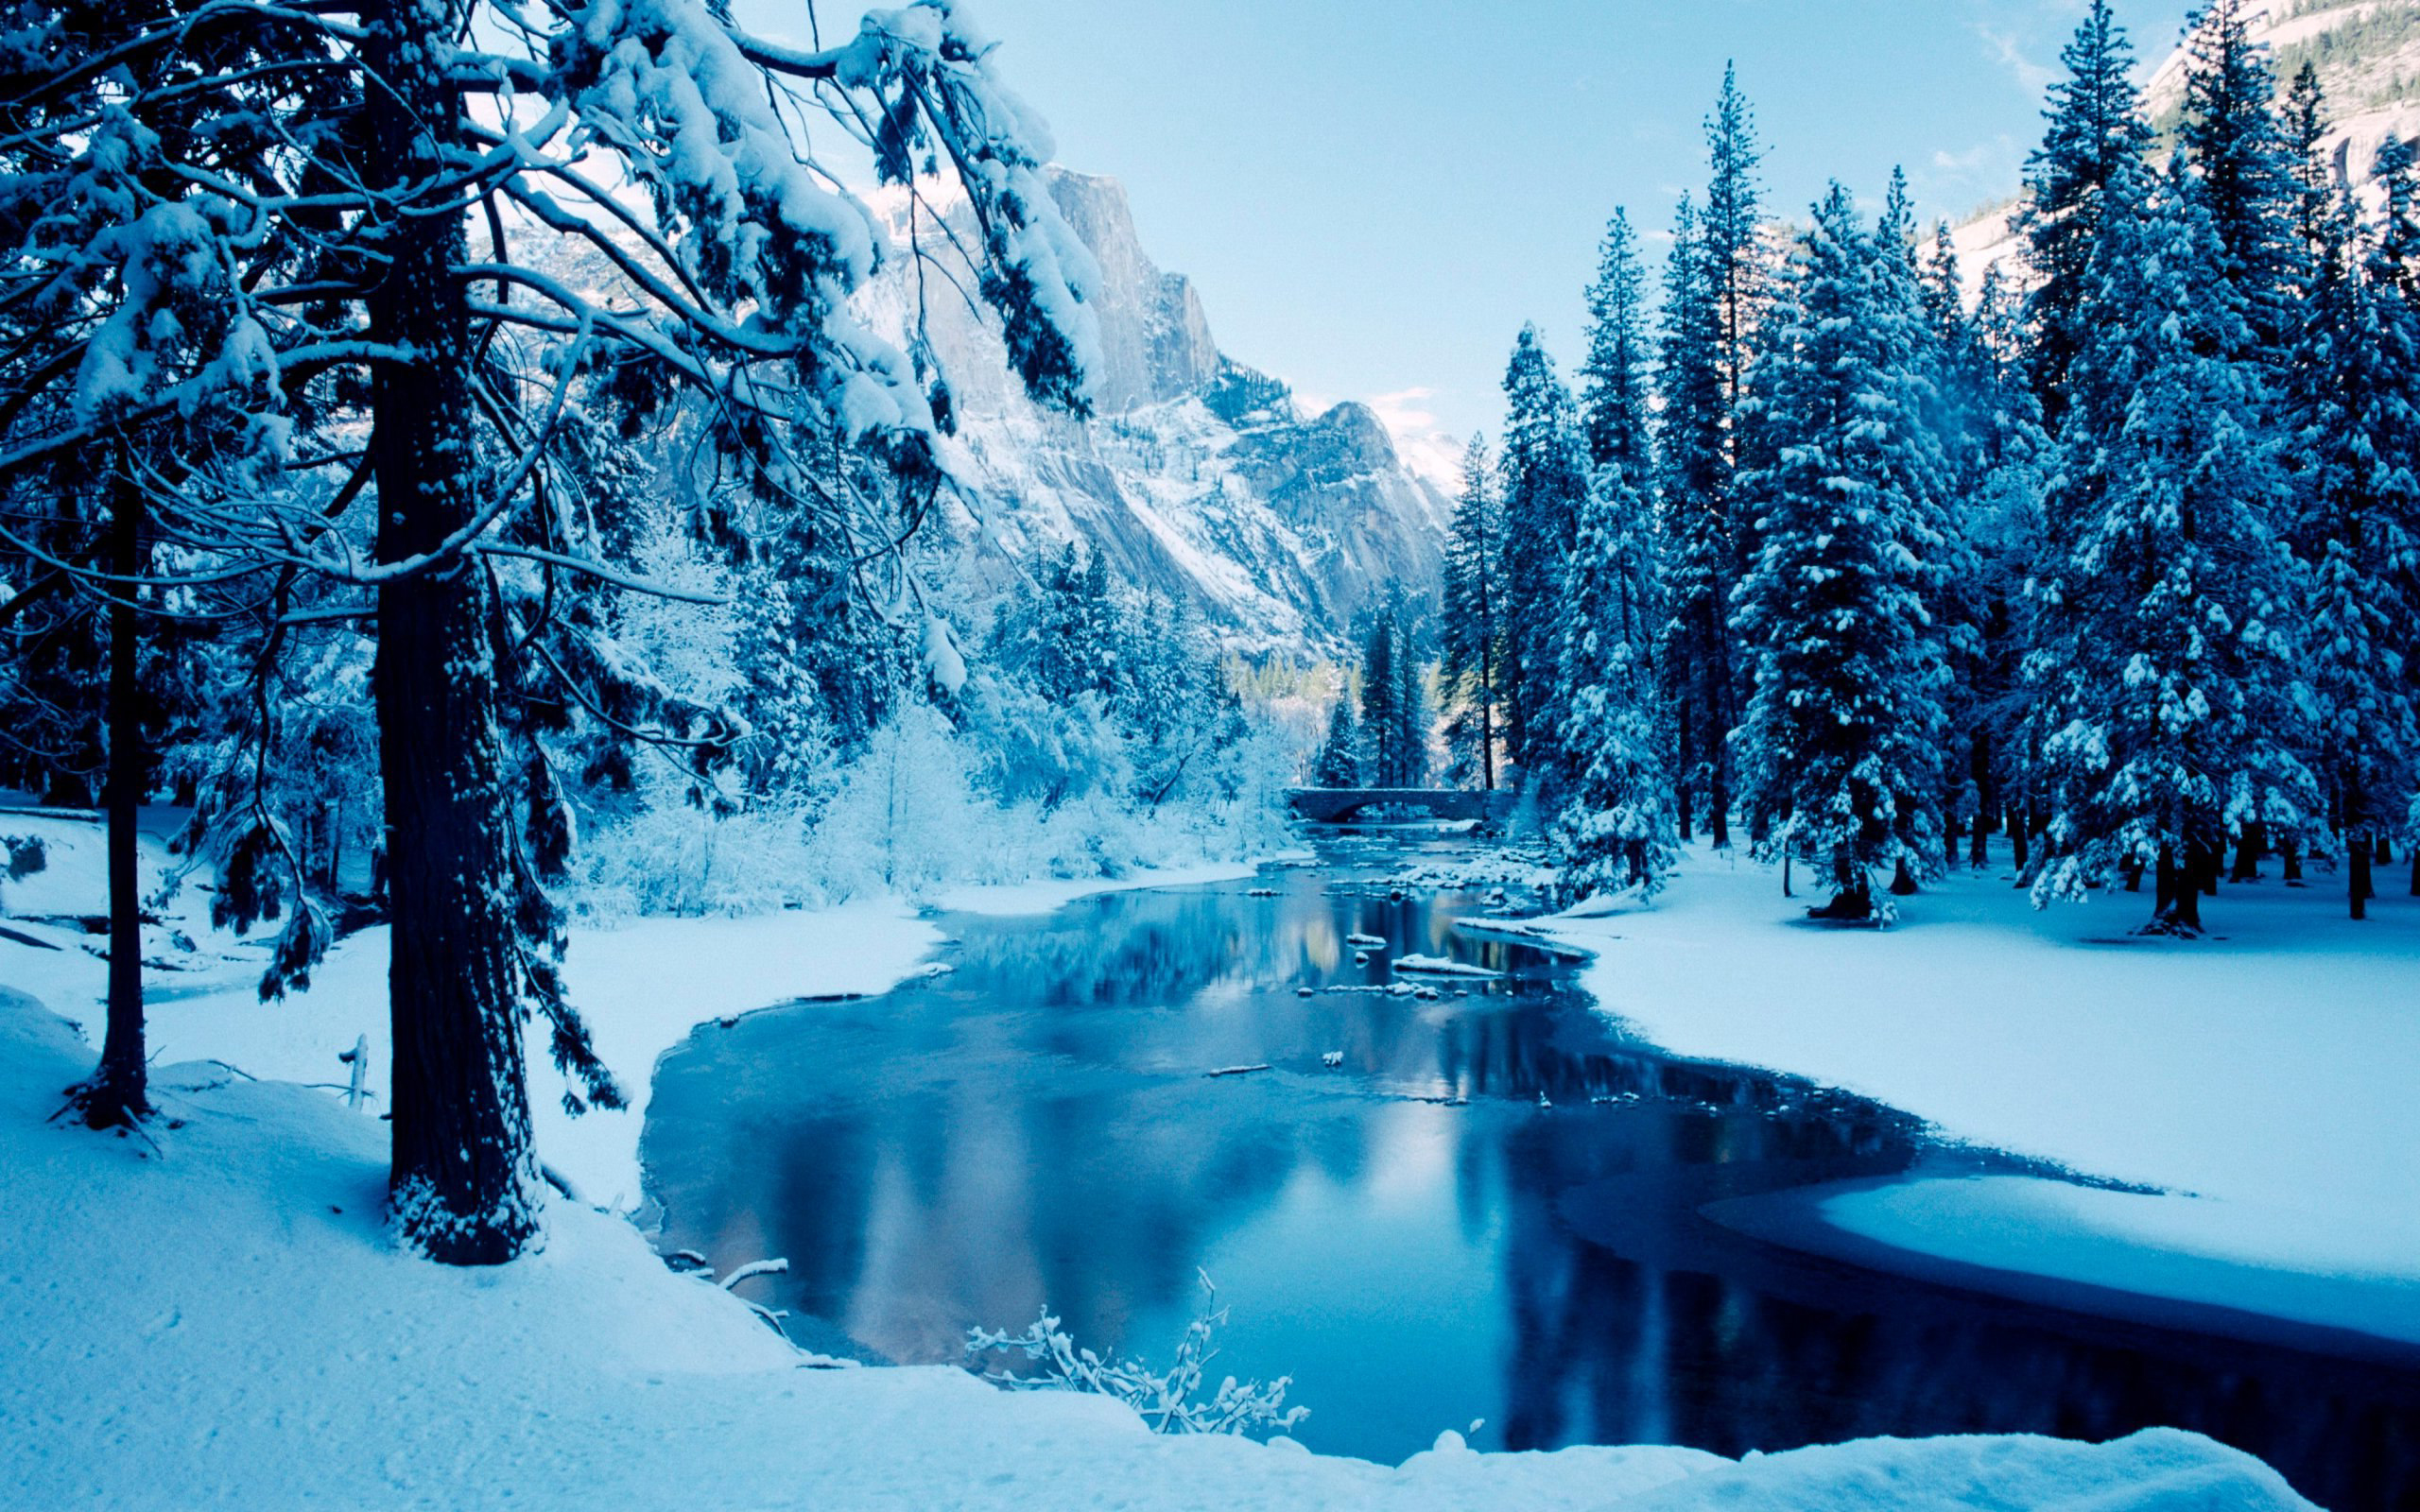 Windows Wallpaper Winter Scene Pictures to pin 2560x1600